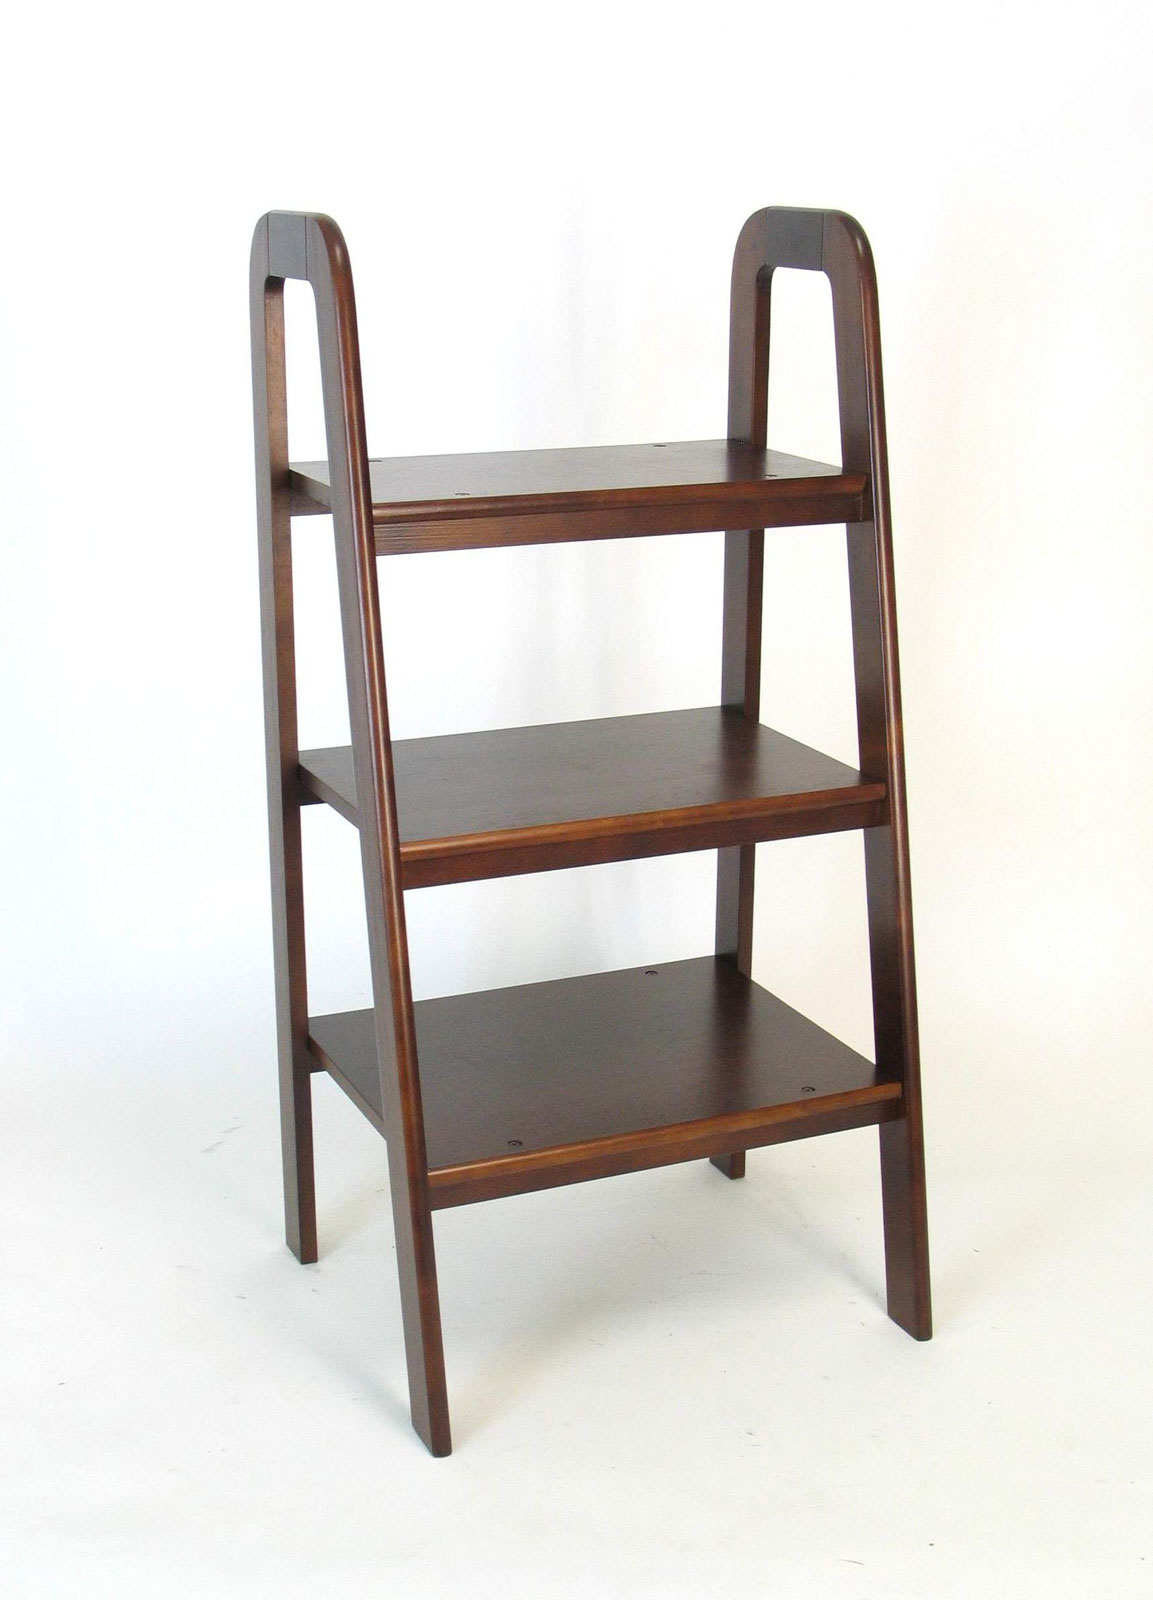 ... Tremendous 11 Small Ladder Shelf Display Ladders And Shelves The  Workshop ...